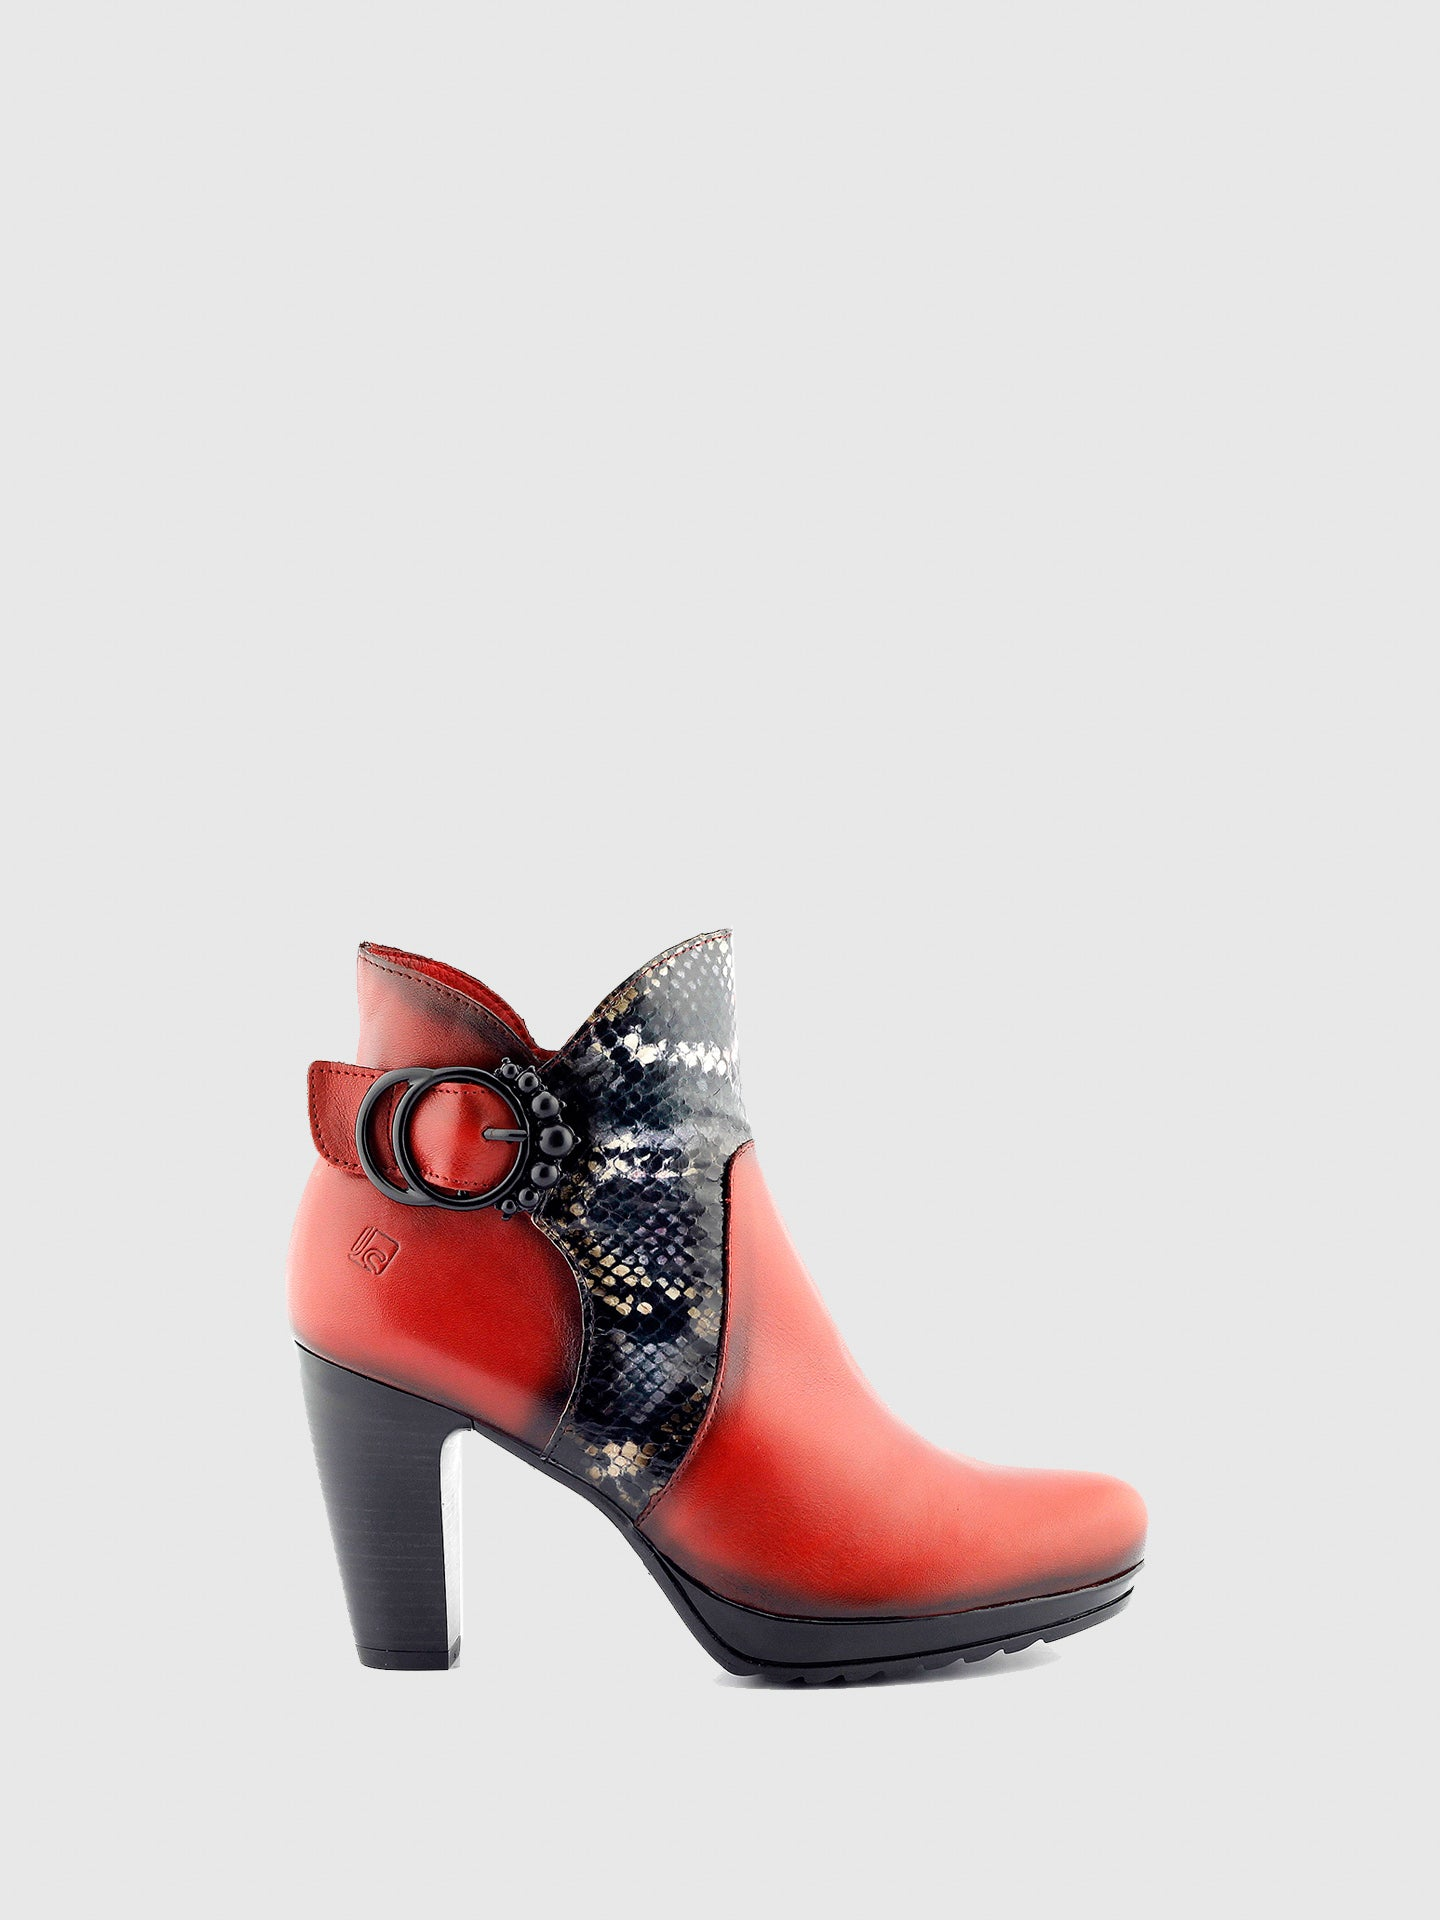 Jose Saenz Red Black Zip Up Ankle Boots